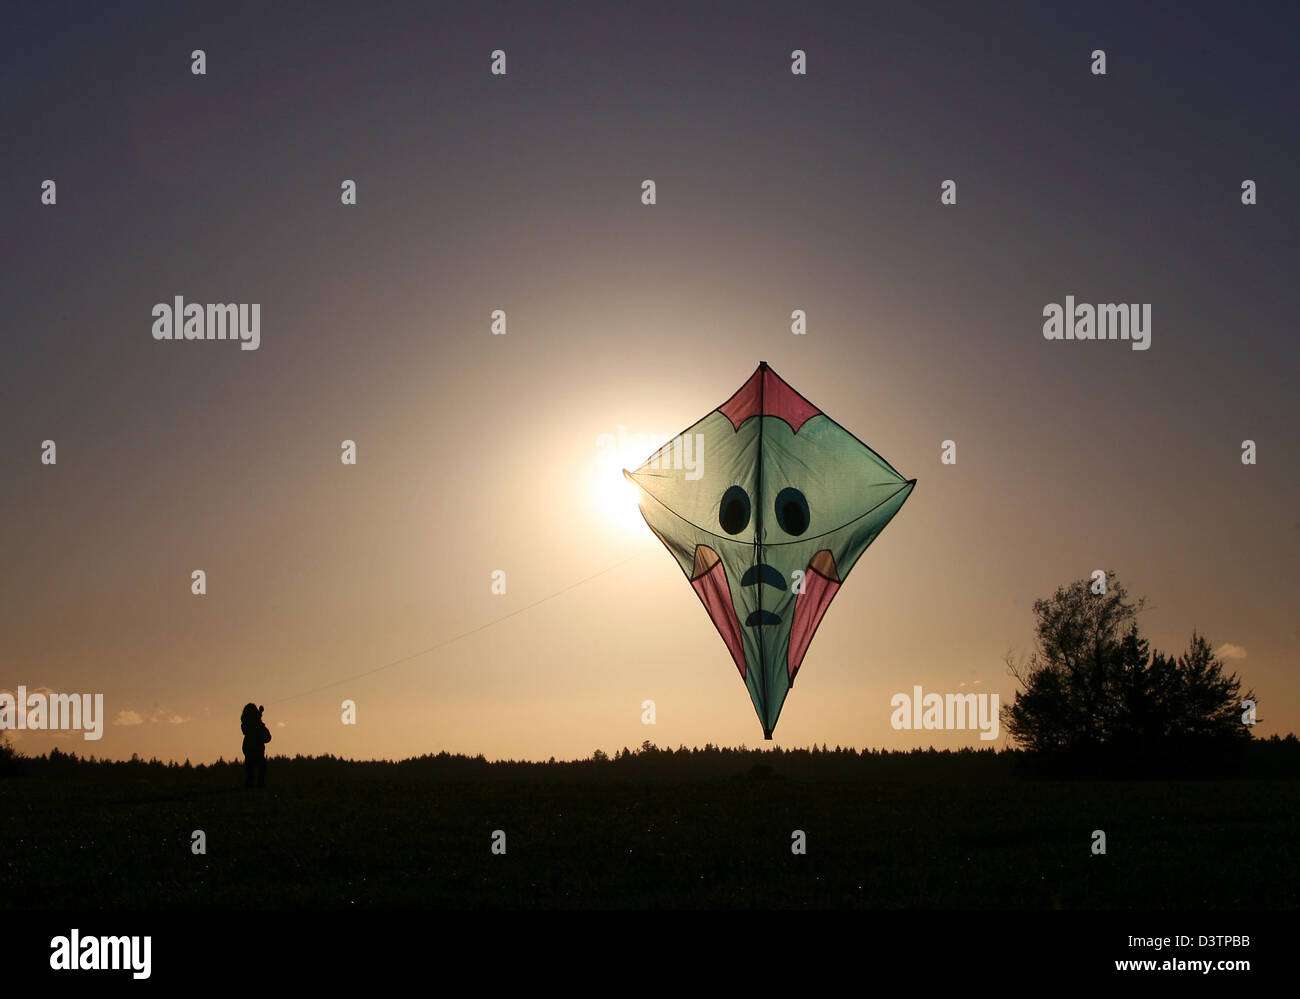 The picture shows a kite in the air at sunset near Irsee, Germany, Tuesday, 24 October 2006. Kites are originally - Stock Image